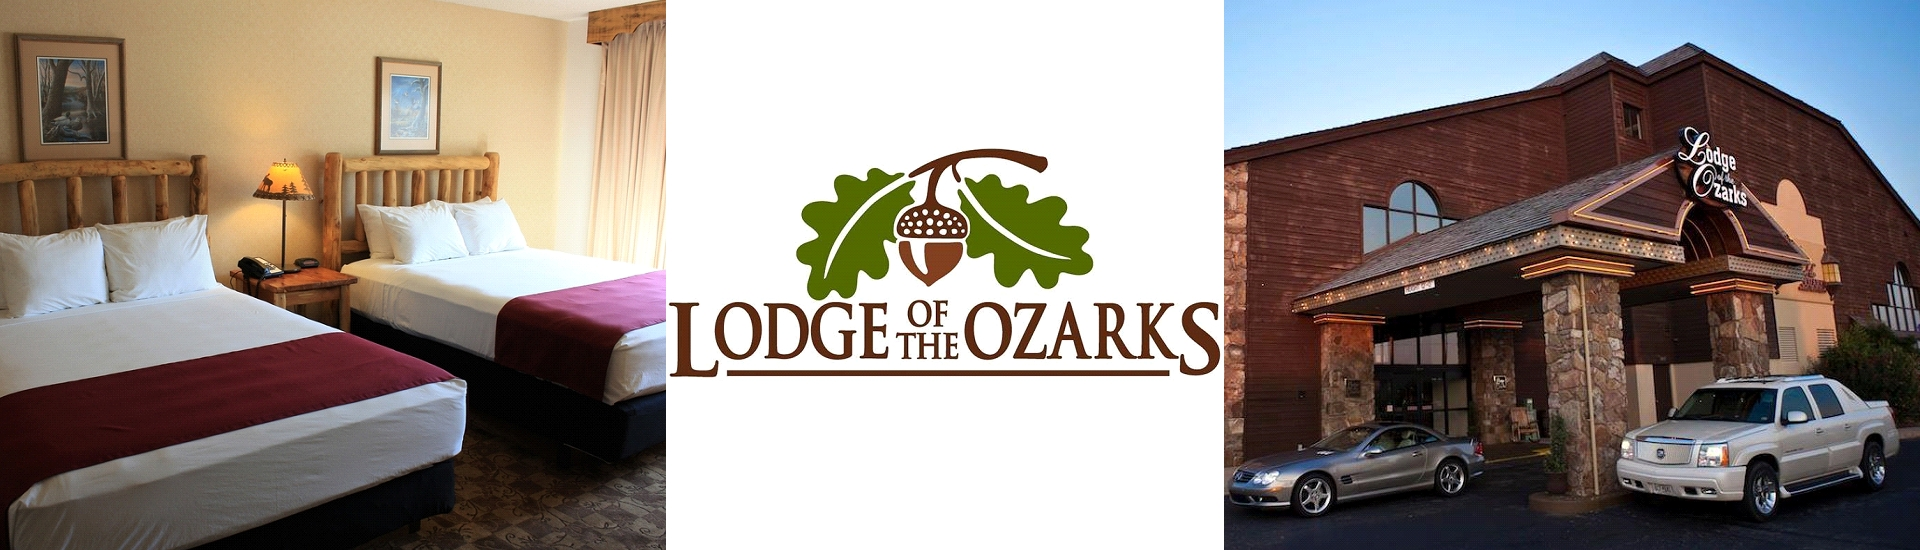 lodge of the ozarks branson mo reviews